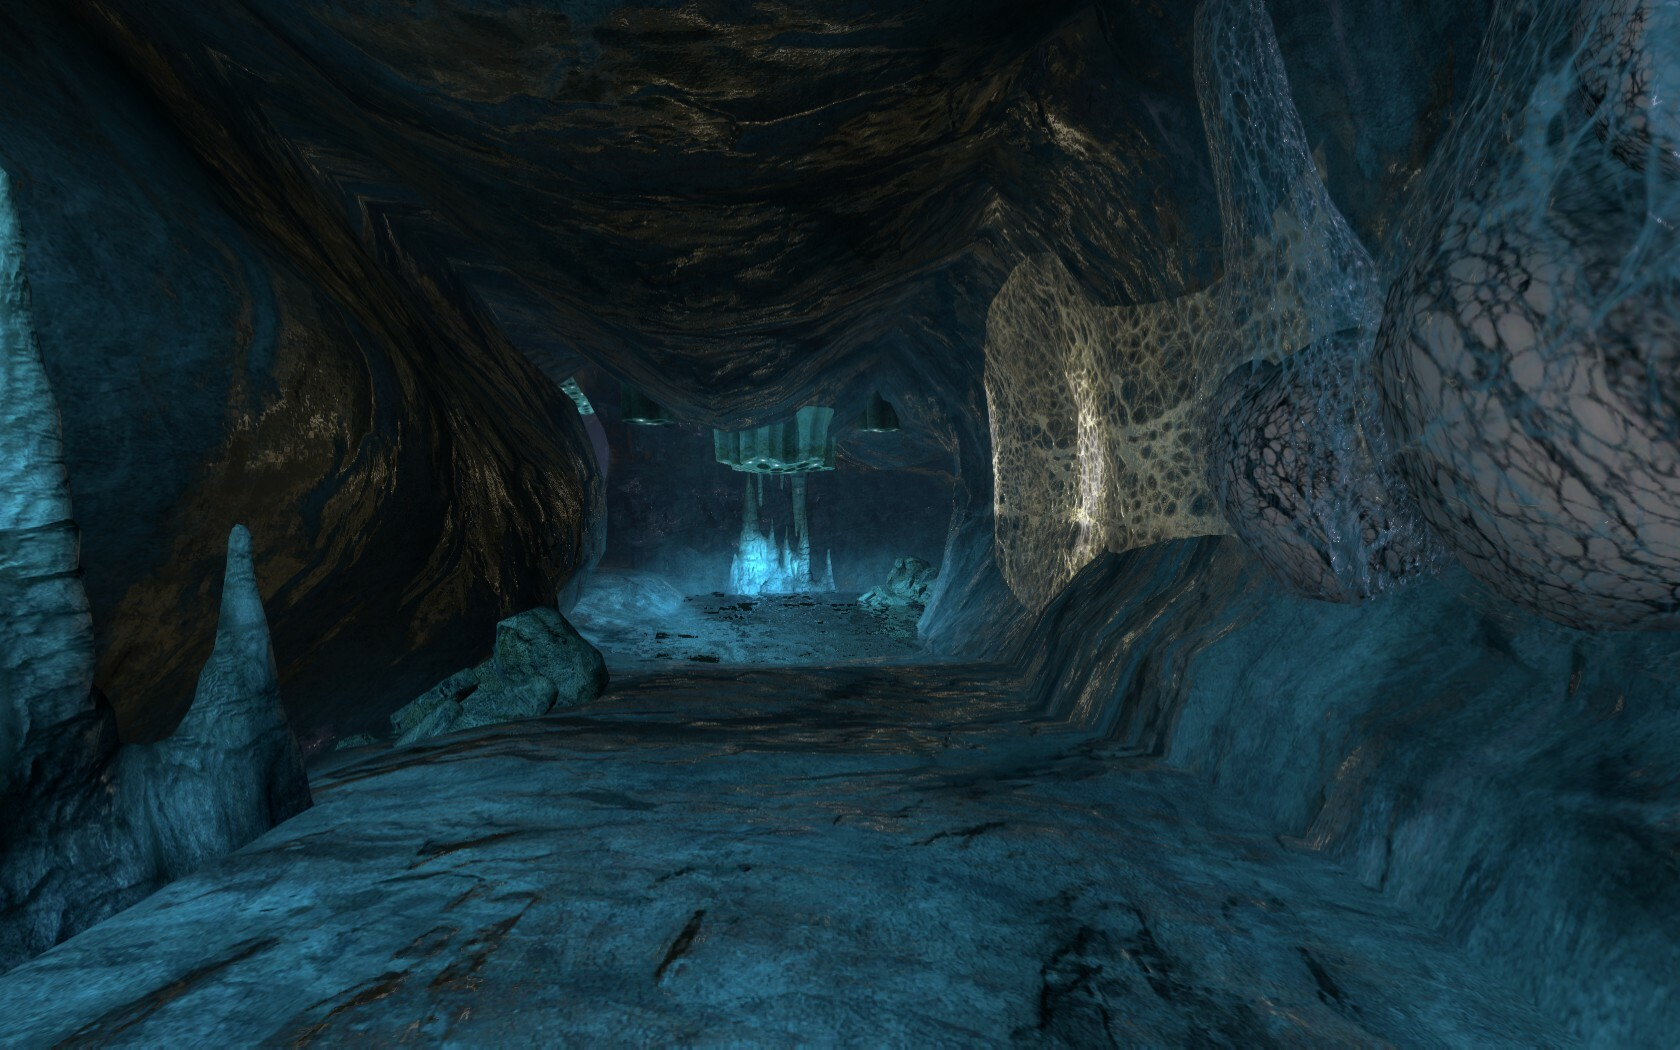 The blue light is also used to guide the player.